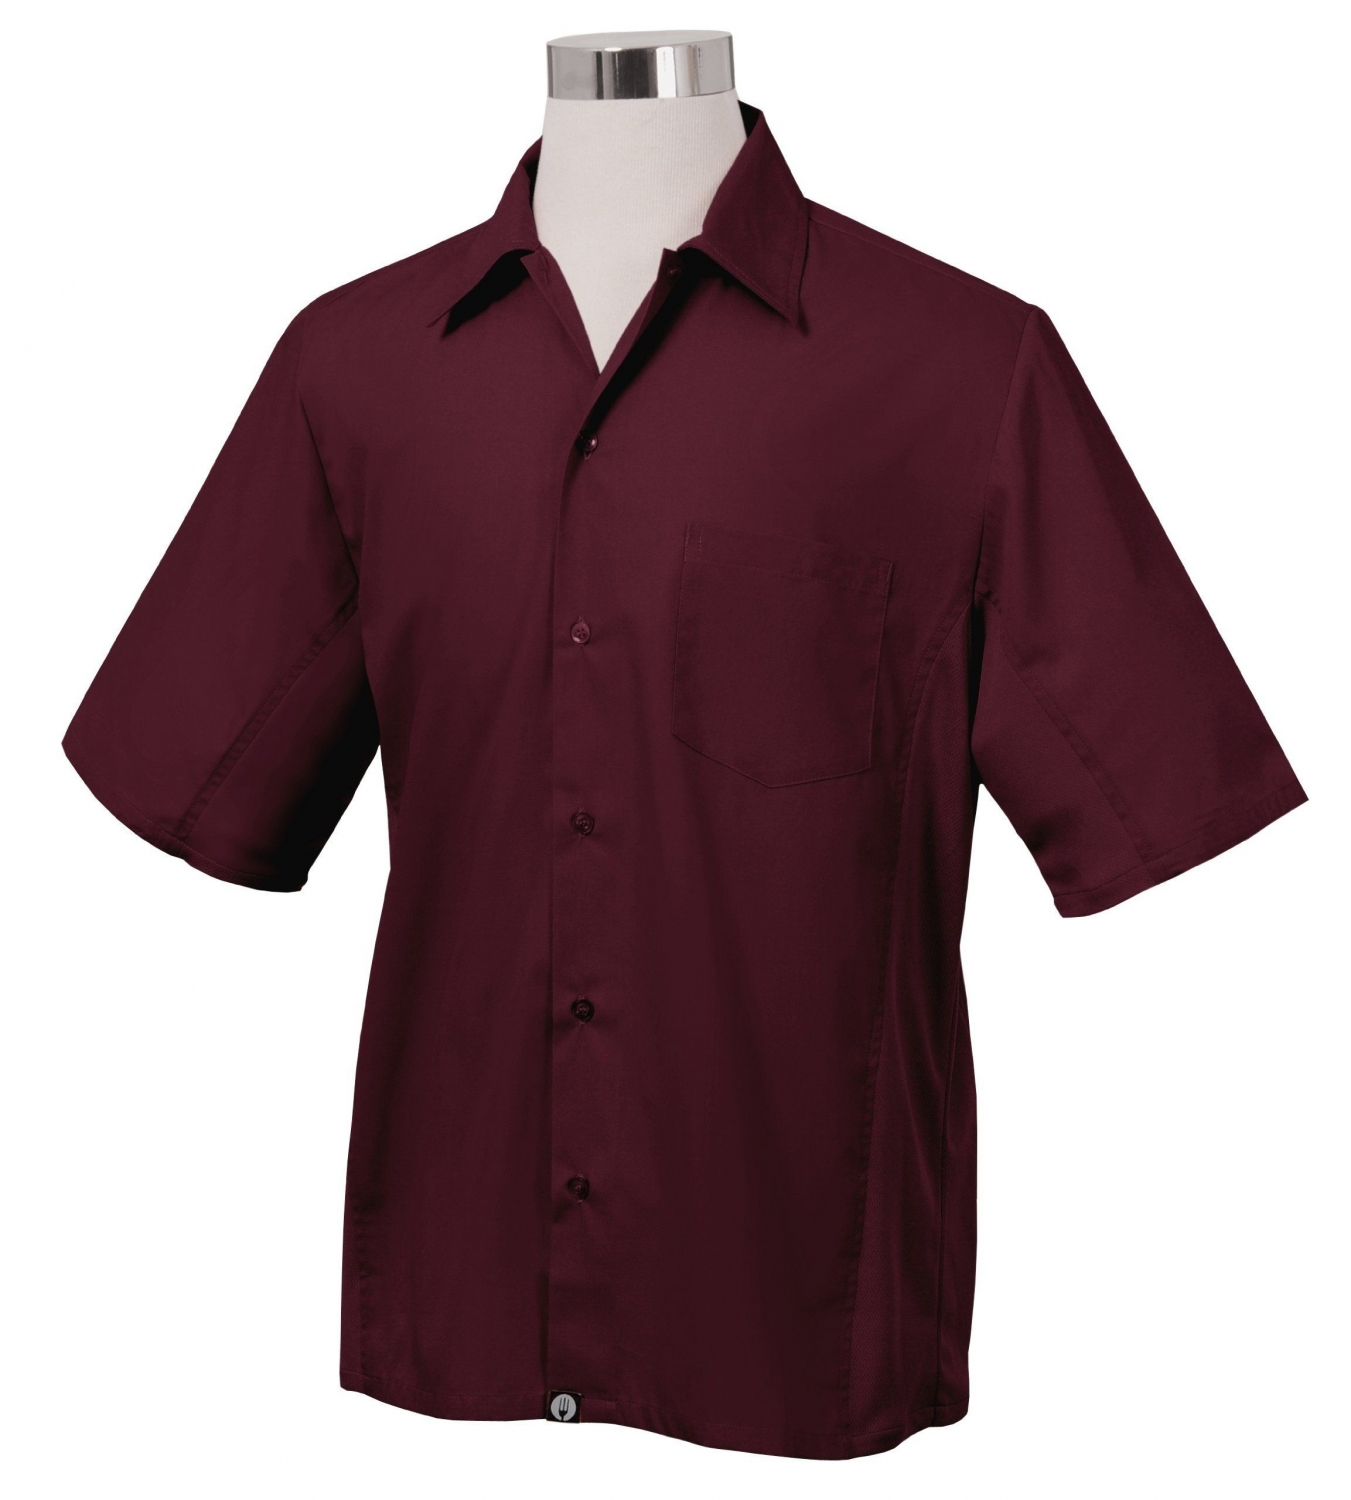 Chef Works CSMV-MER Men's Cool Vent Universal Shirt, Merlot